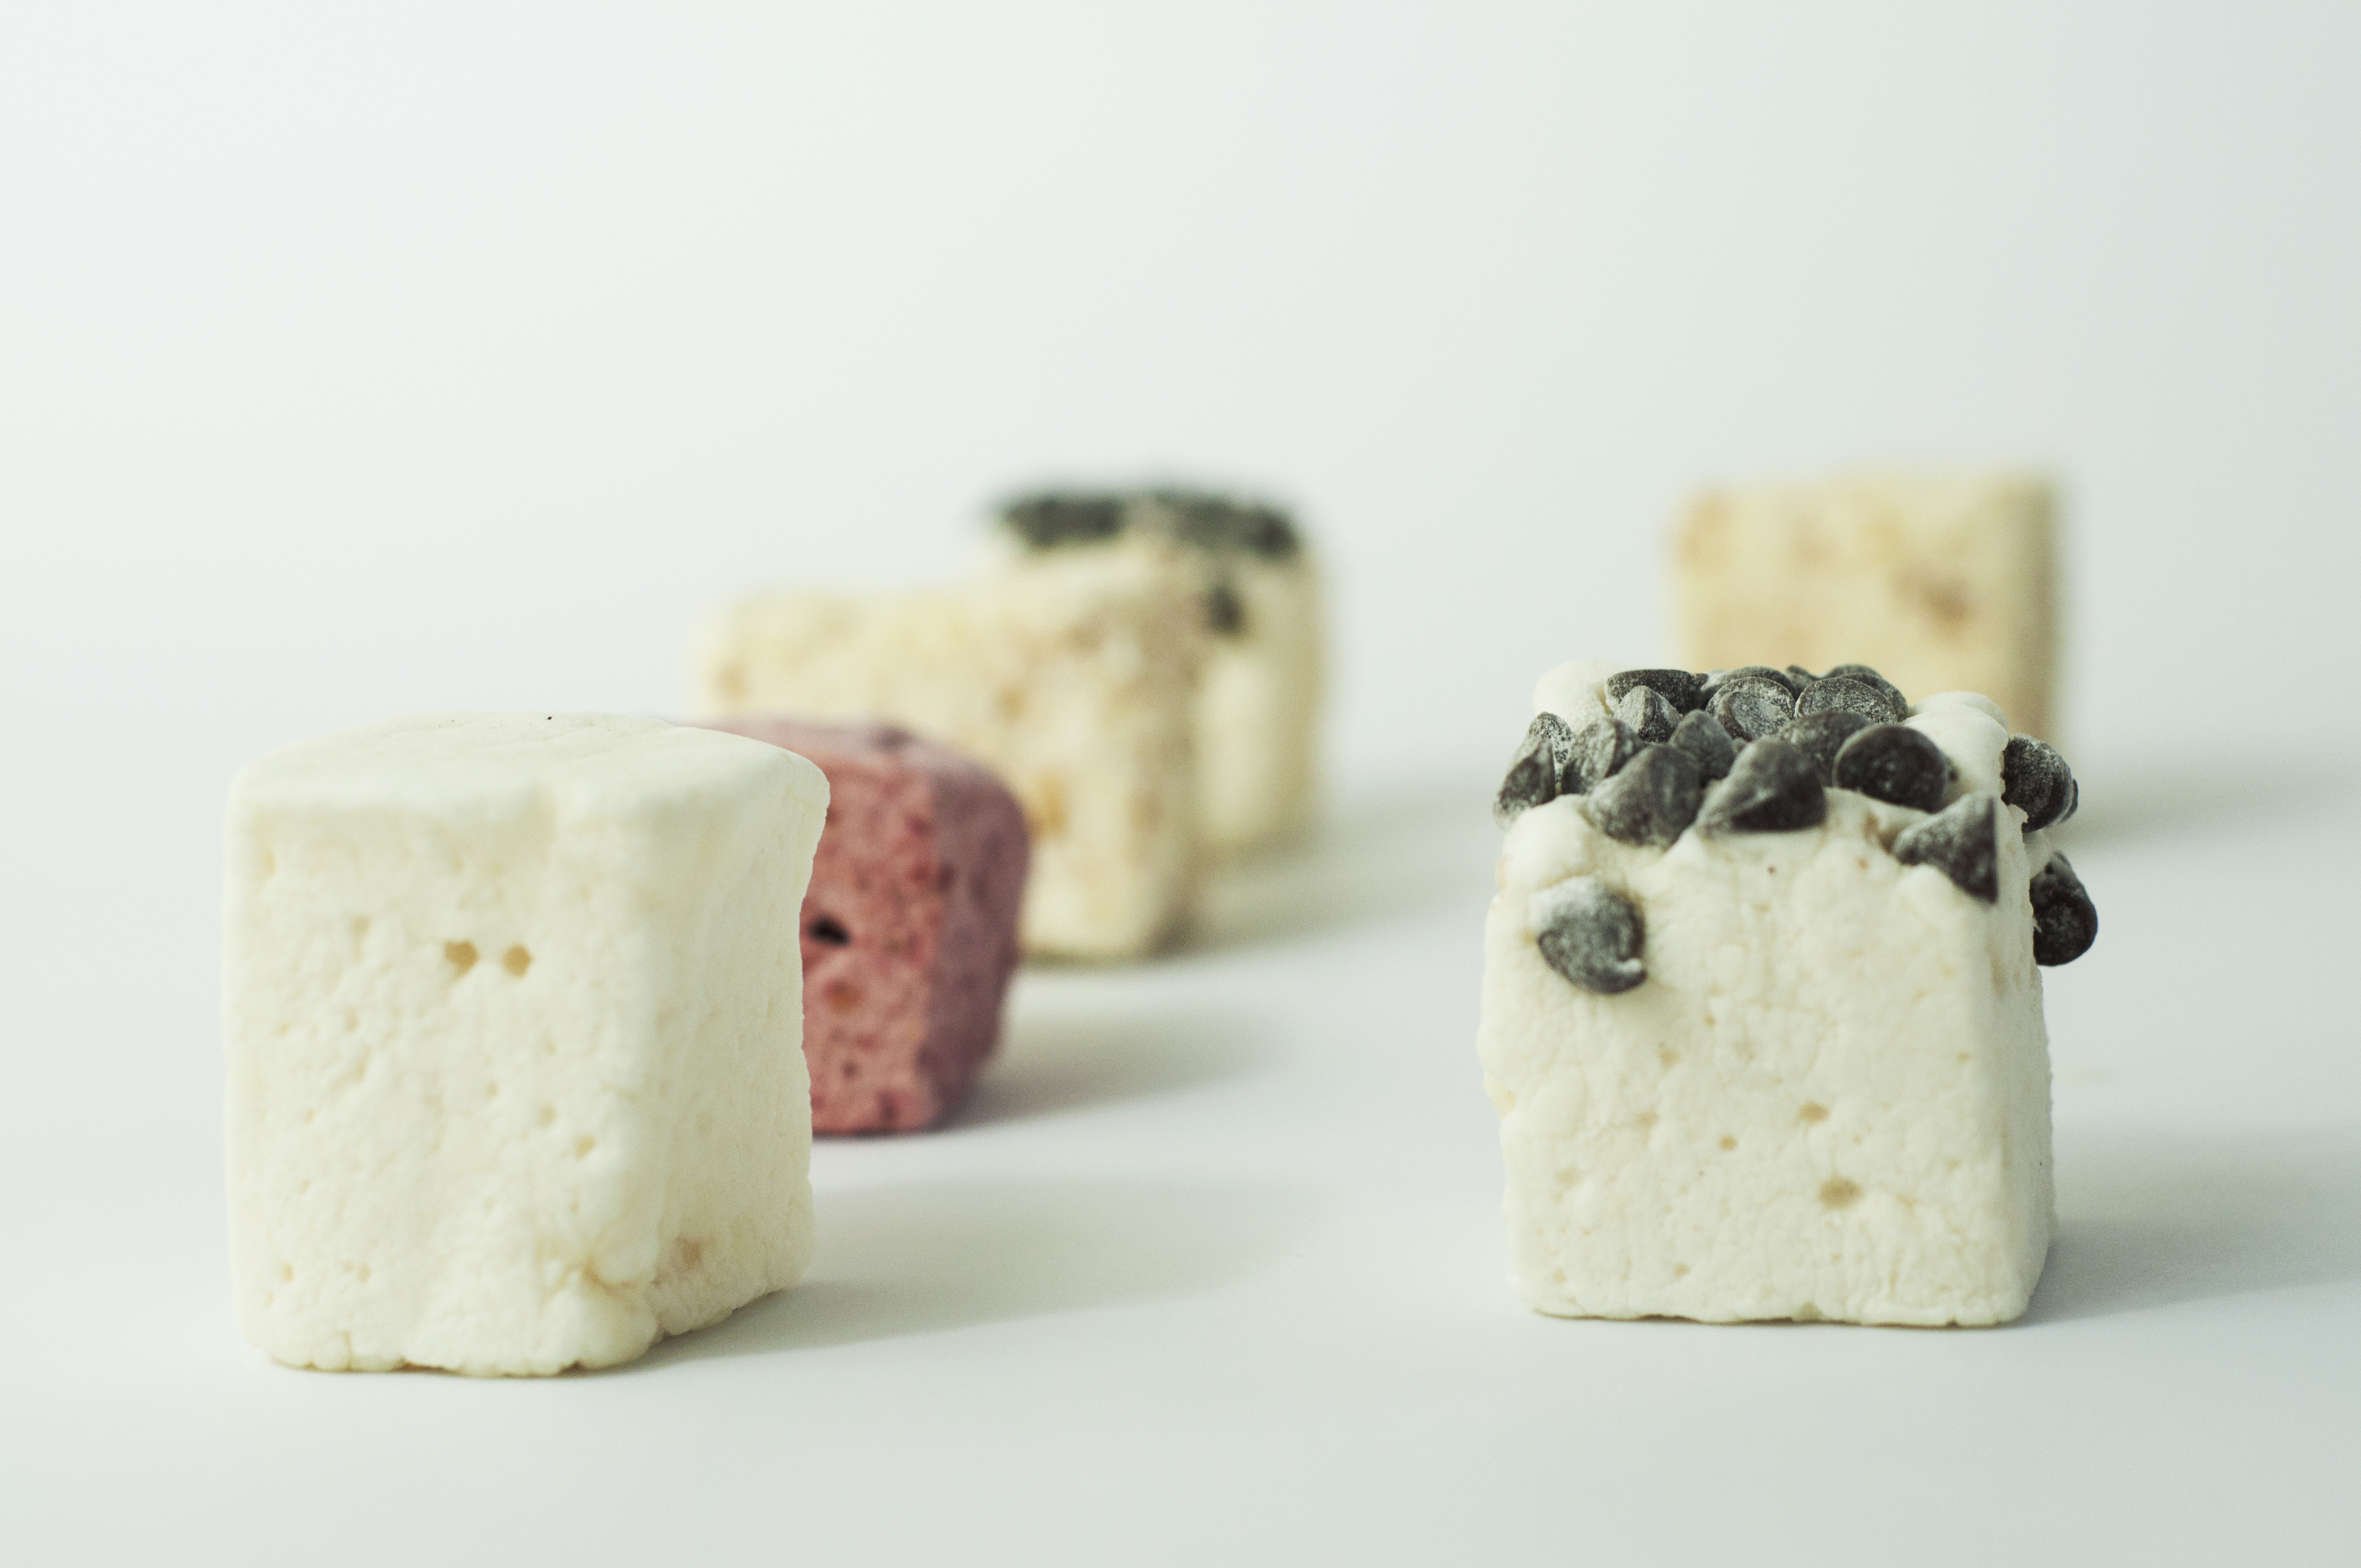 30 Digital Champions: The small business creating creamy bundles of gooey deliciousness